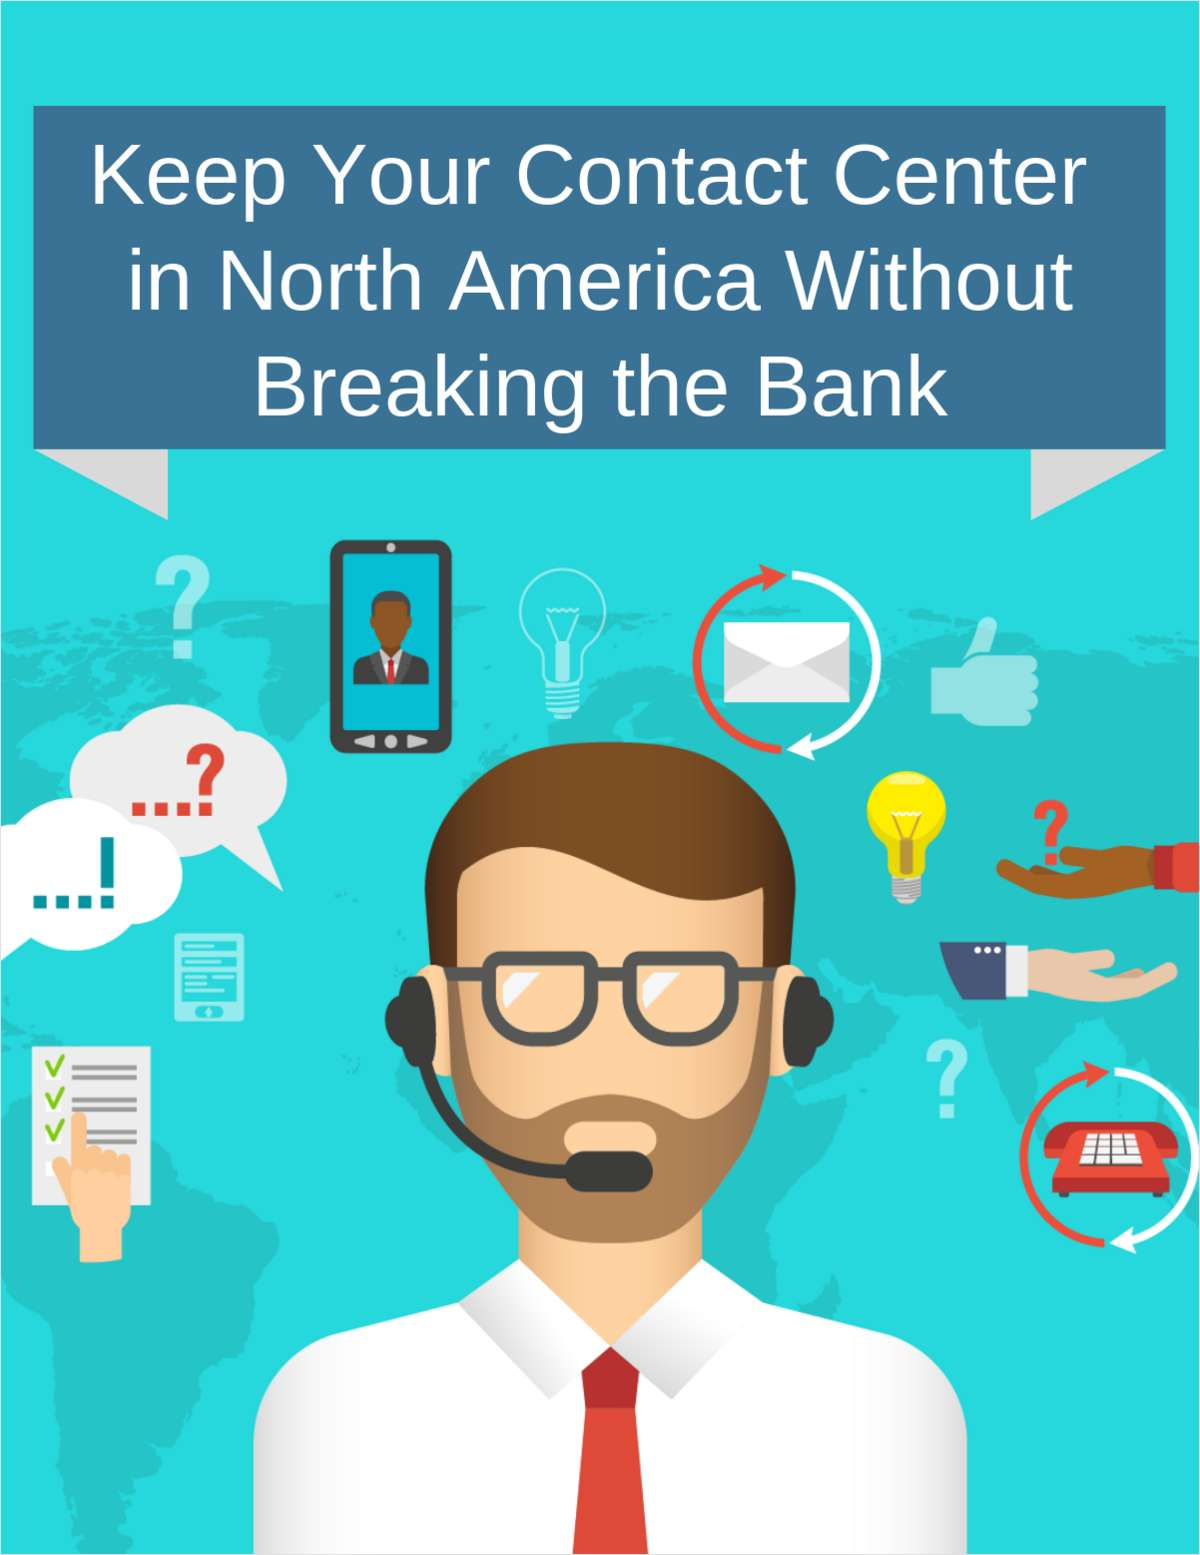 Keep Your Contact Center in North America Without Breaking the Bank